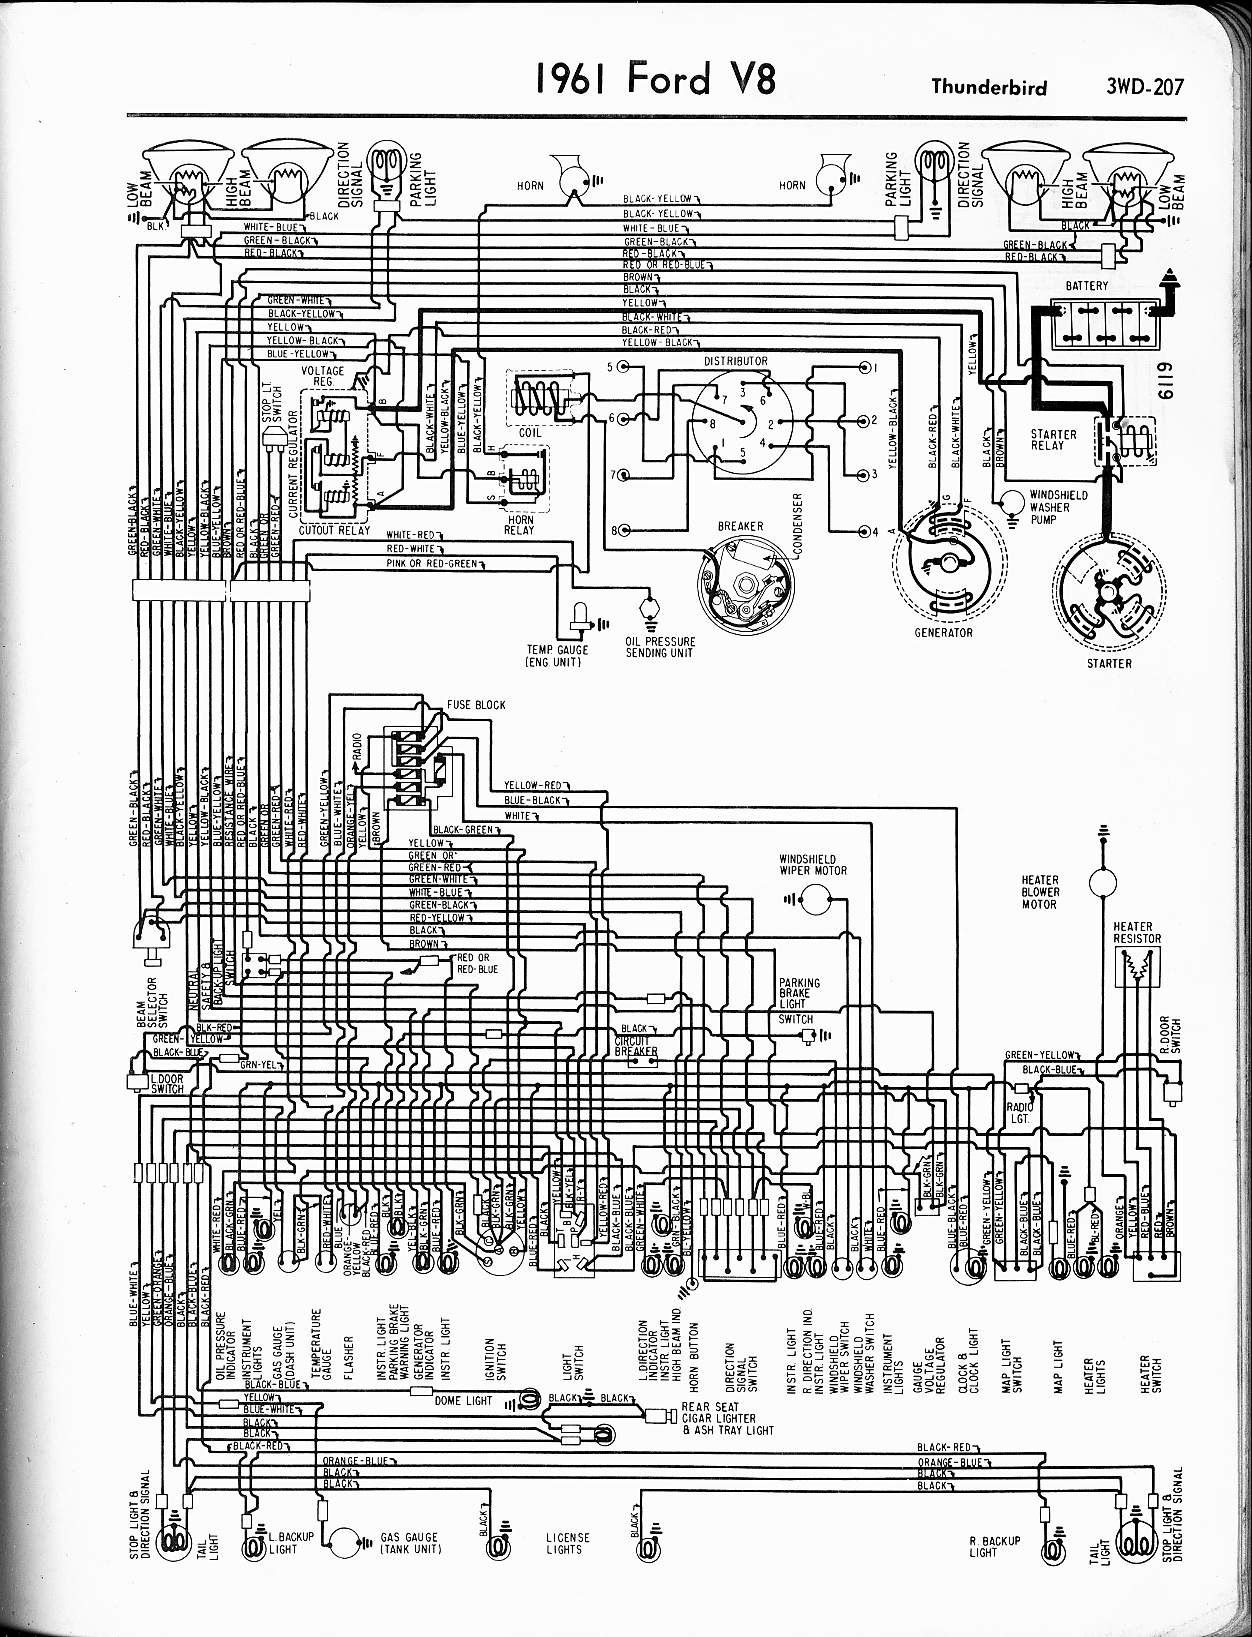 Brilliant 57 65 Ford Wiring Diagrams Wiring Cloud Staixuggs Outletorg